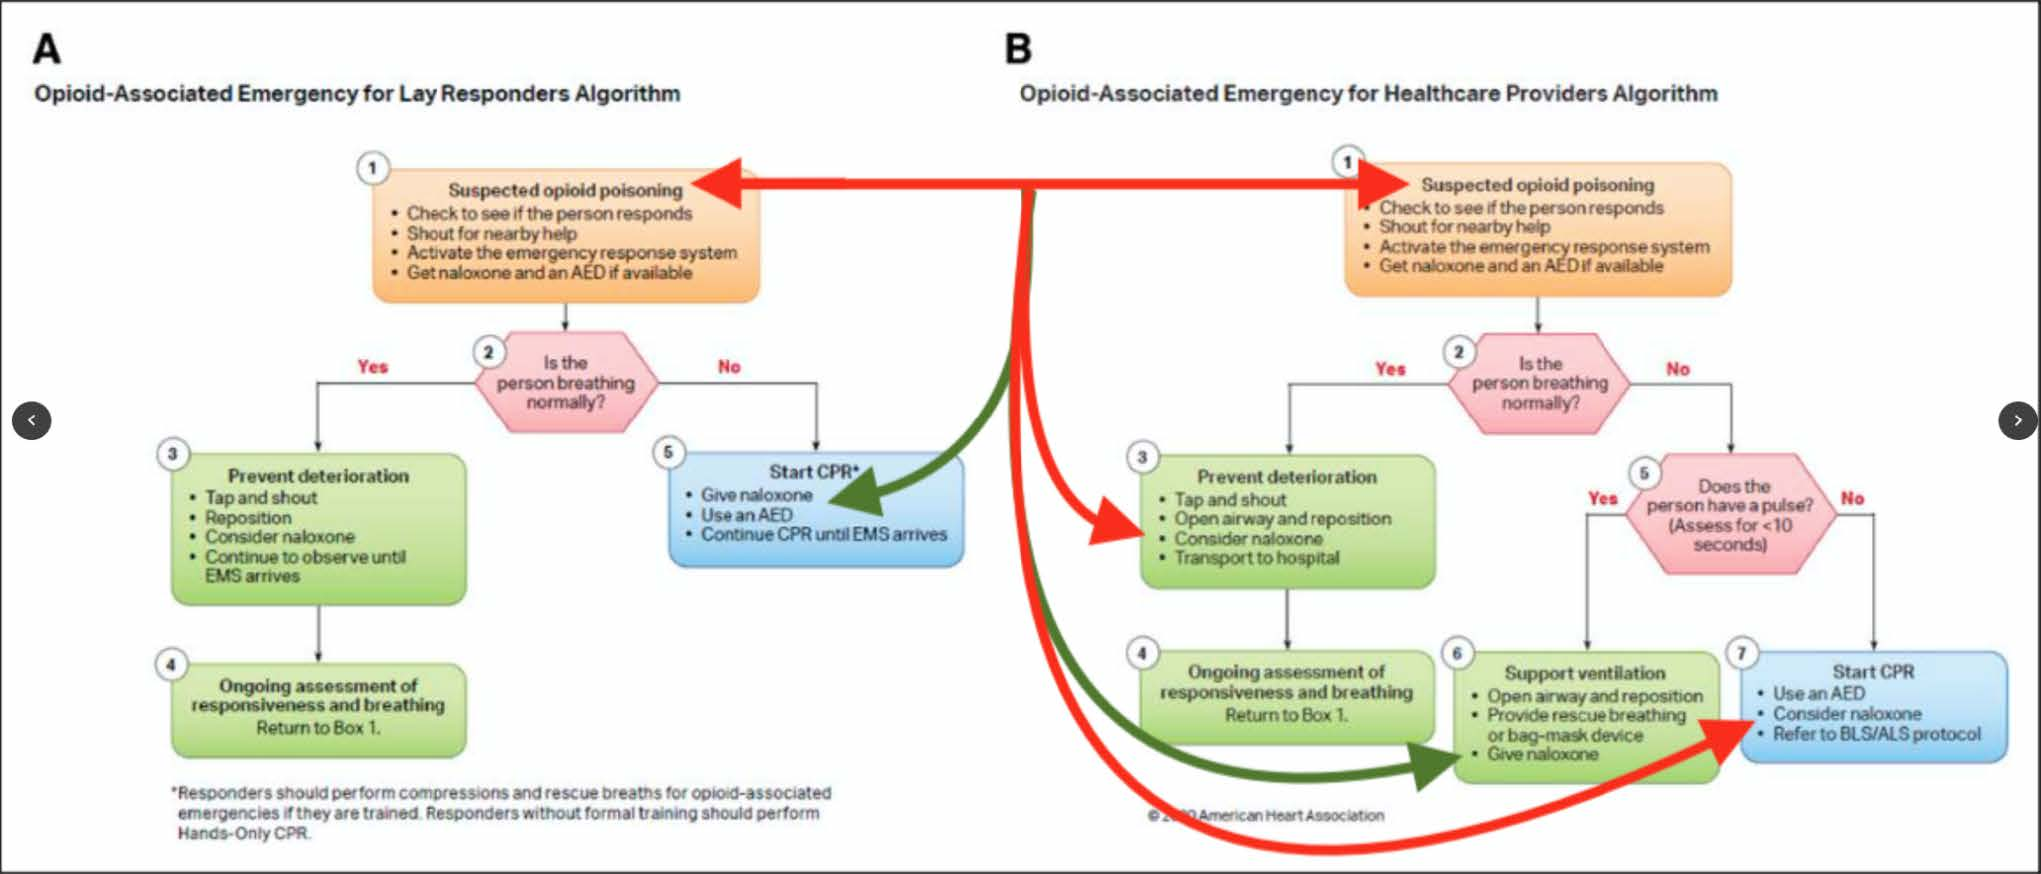 2021 AHA Guideline Changes for Opioid Cardiac Arrest, Use of Naloxone in Resuscitation